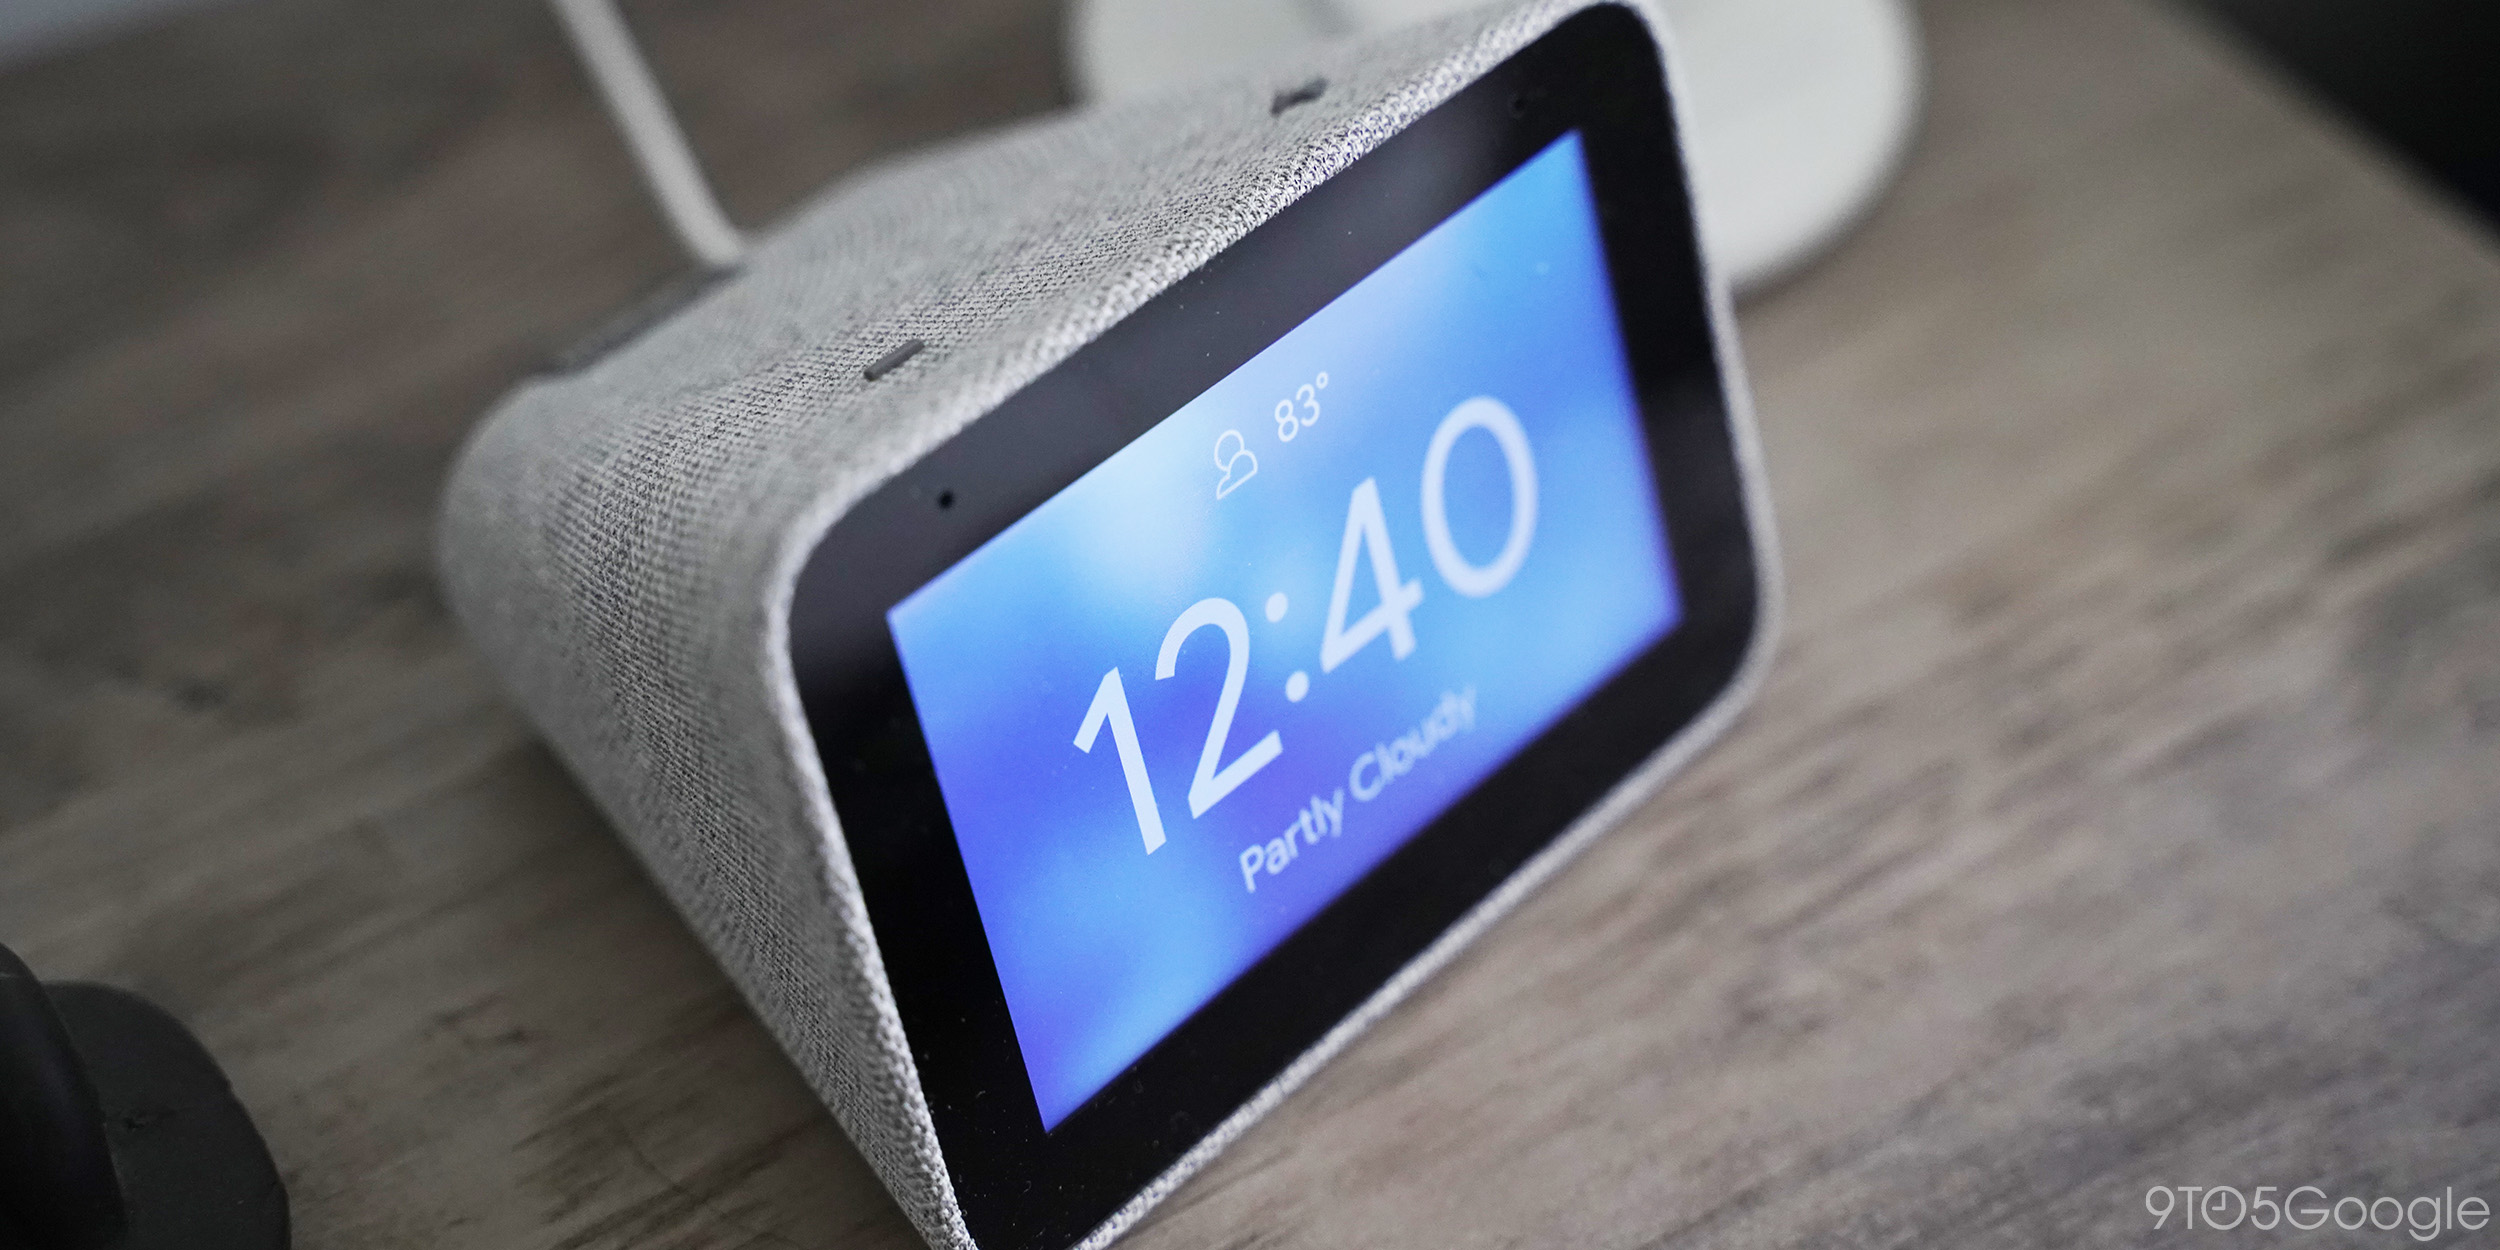 lenovo smart clock weather clockface